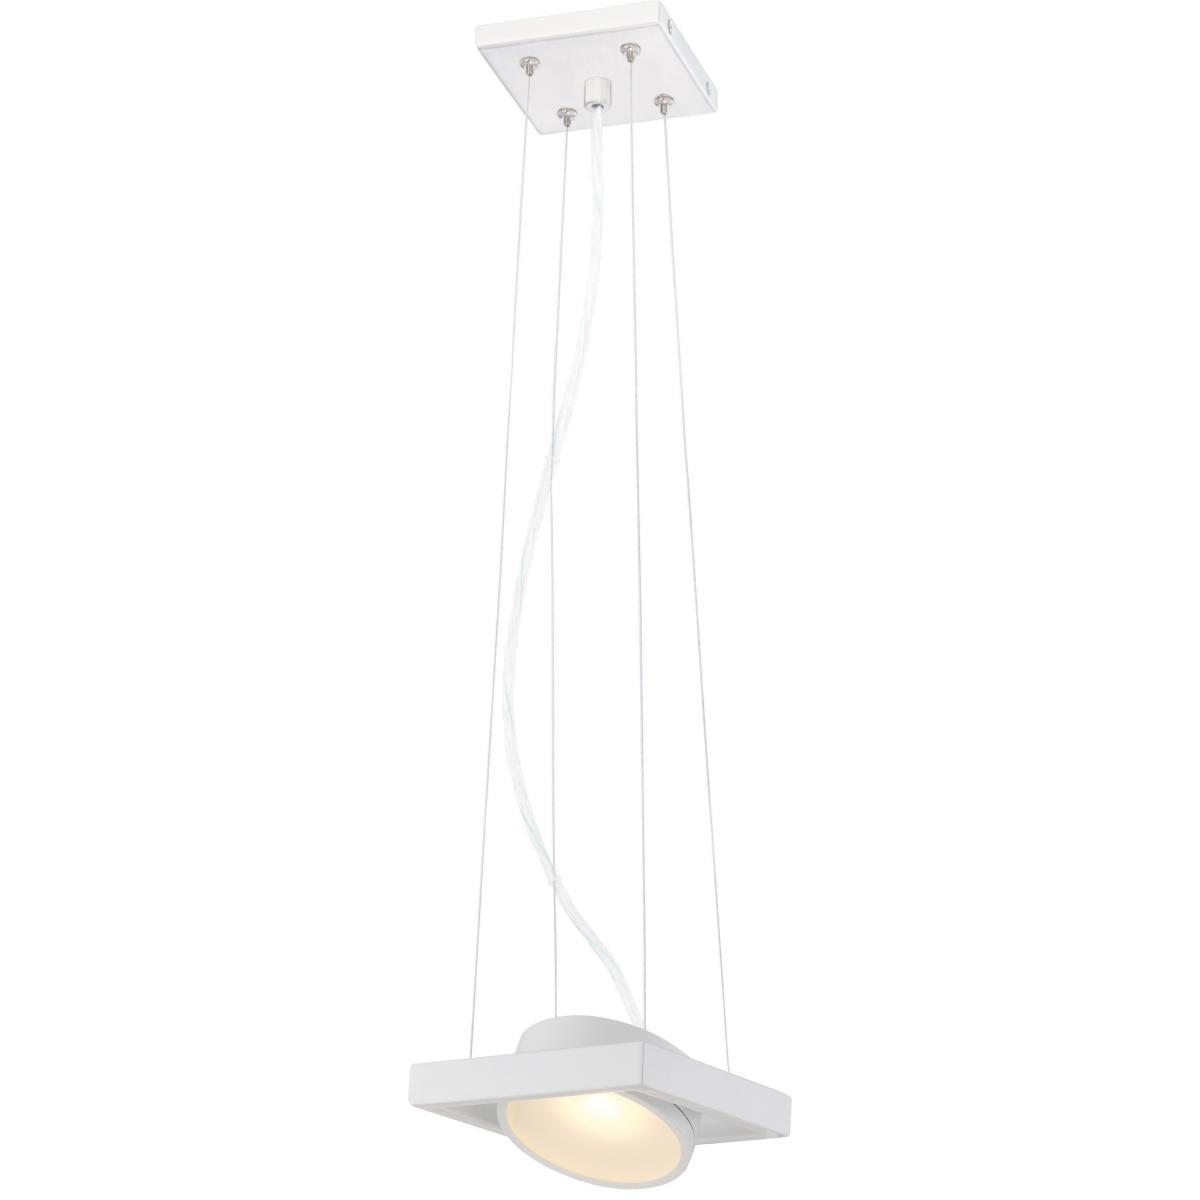 Hawk LED Pivoting Head Pendant White Finish Lamp Included Ceiling Nuvo Lighting